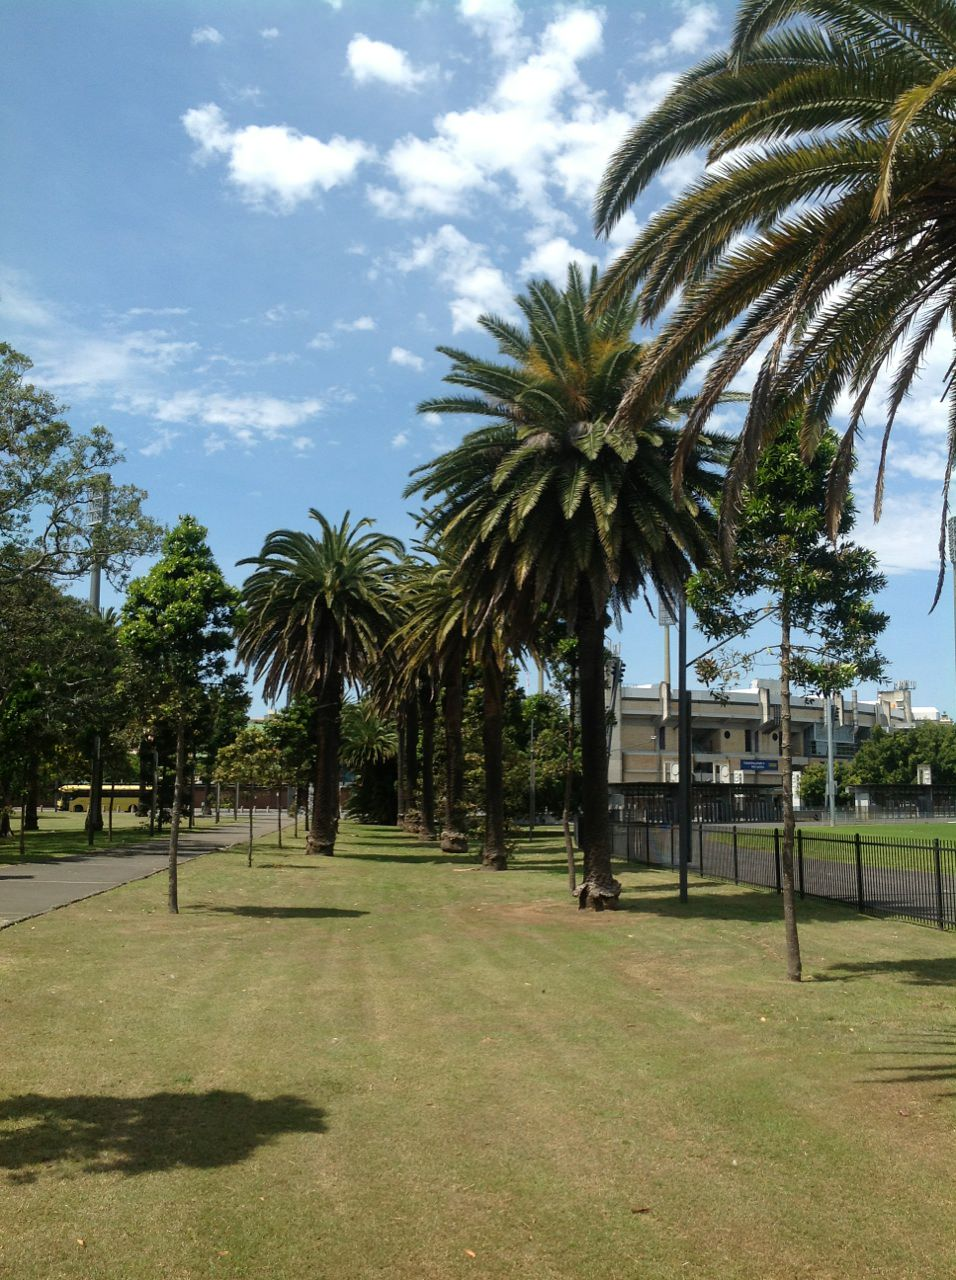 Canary Island Date Palms and Queensland Kauri Pines